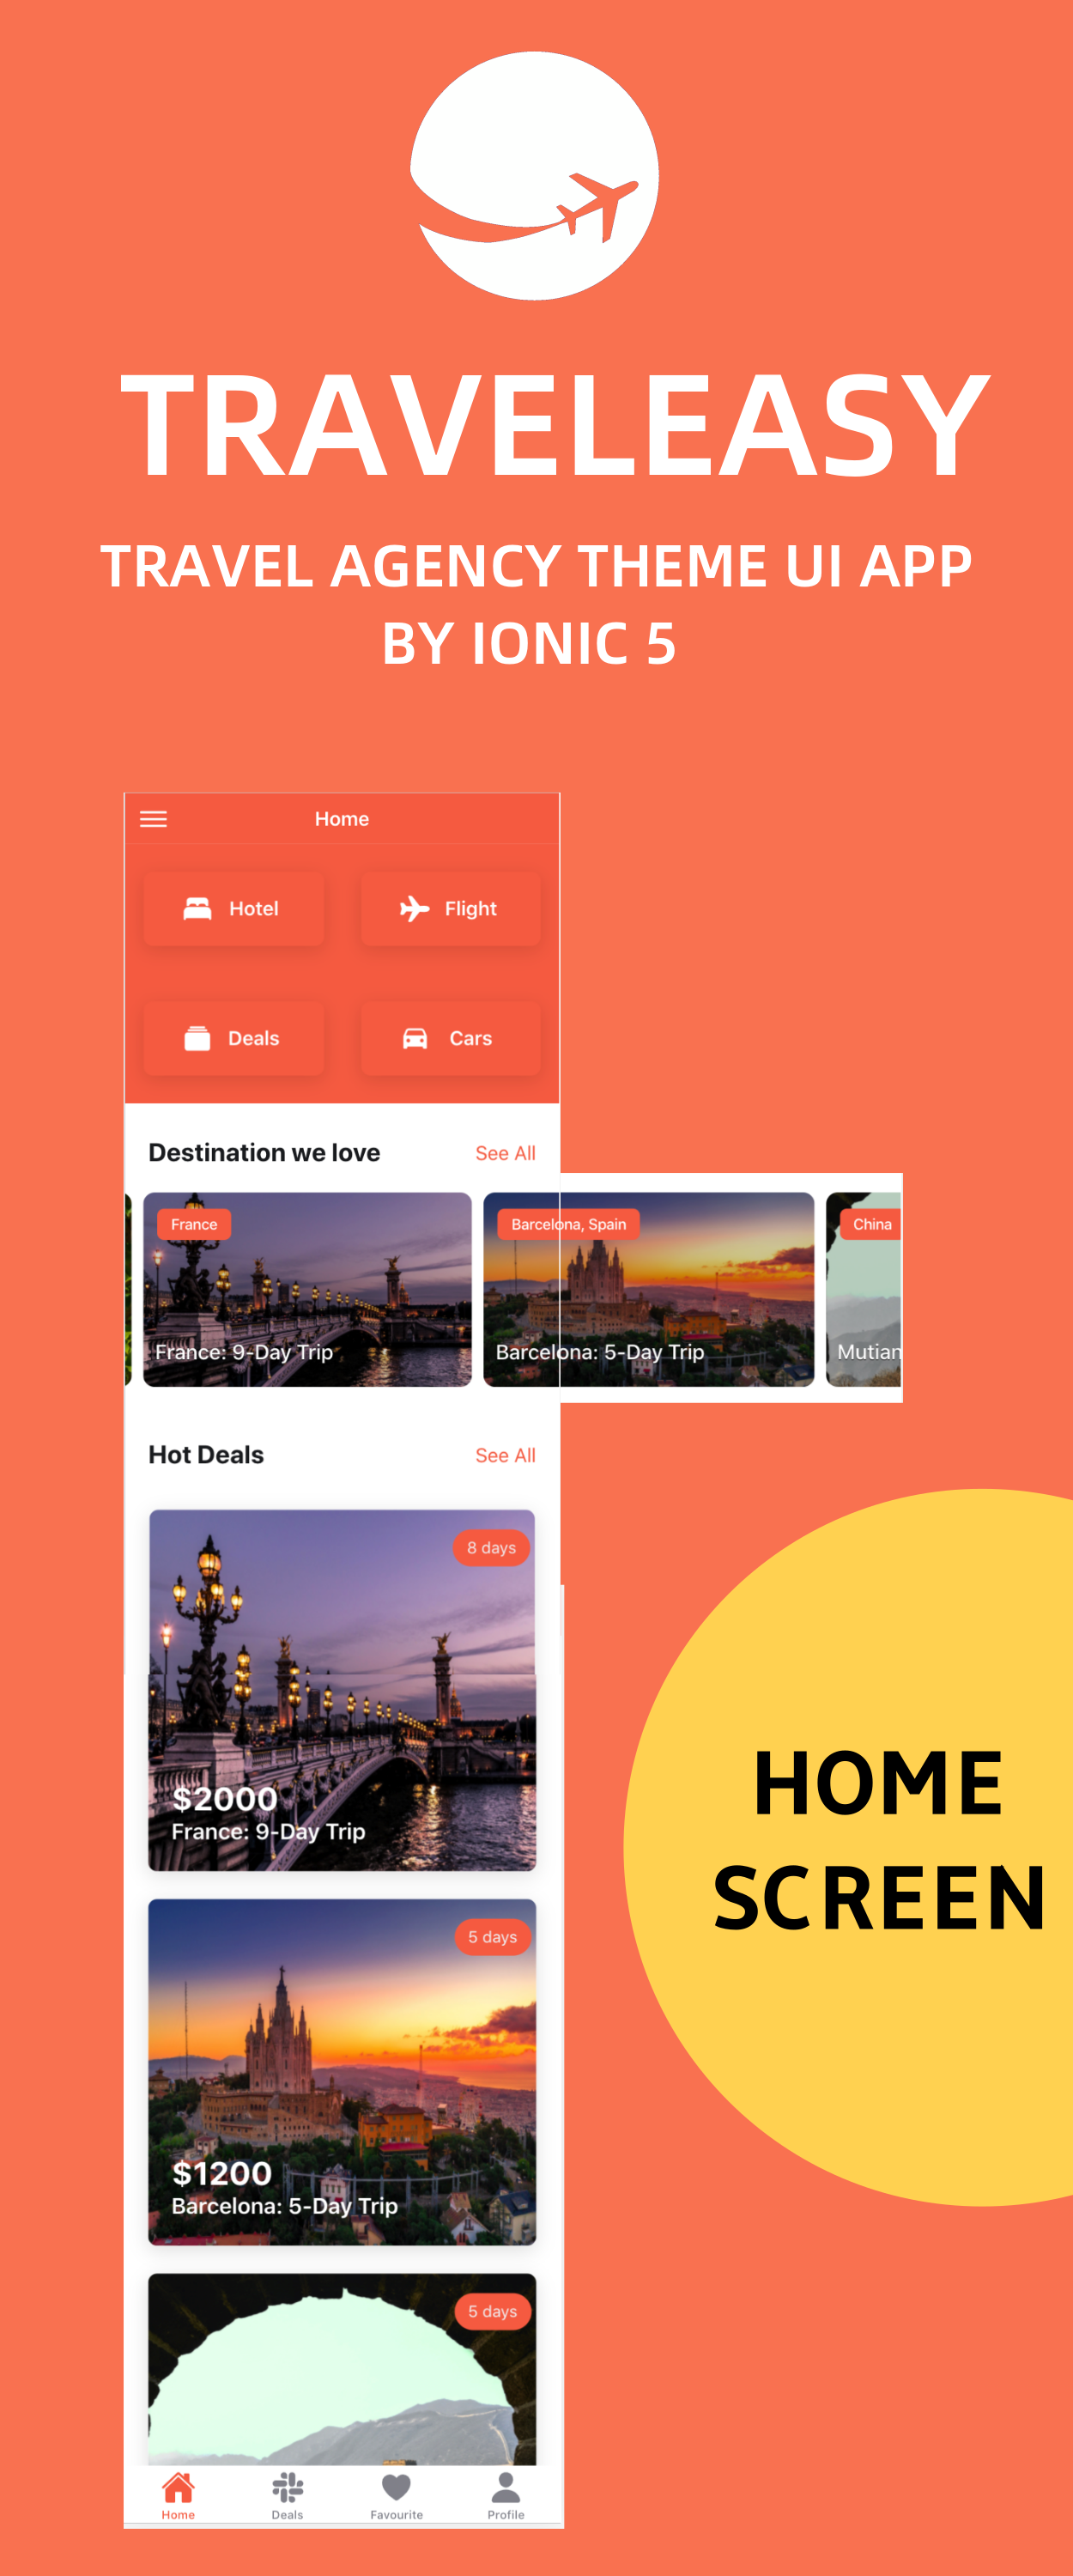 TravelEasy - A Travel Agency Theme UI App By Ionic 5 (Car, Hotel, Flight Booking) - 4